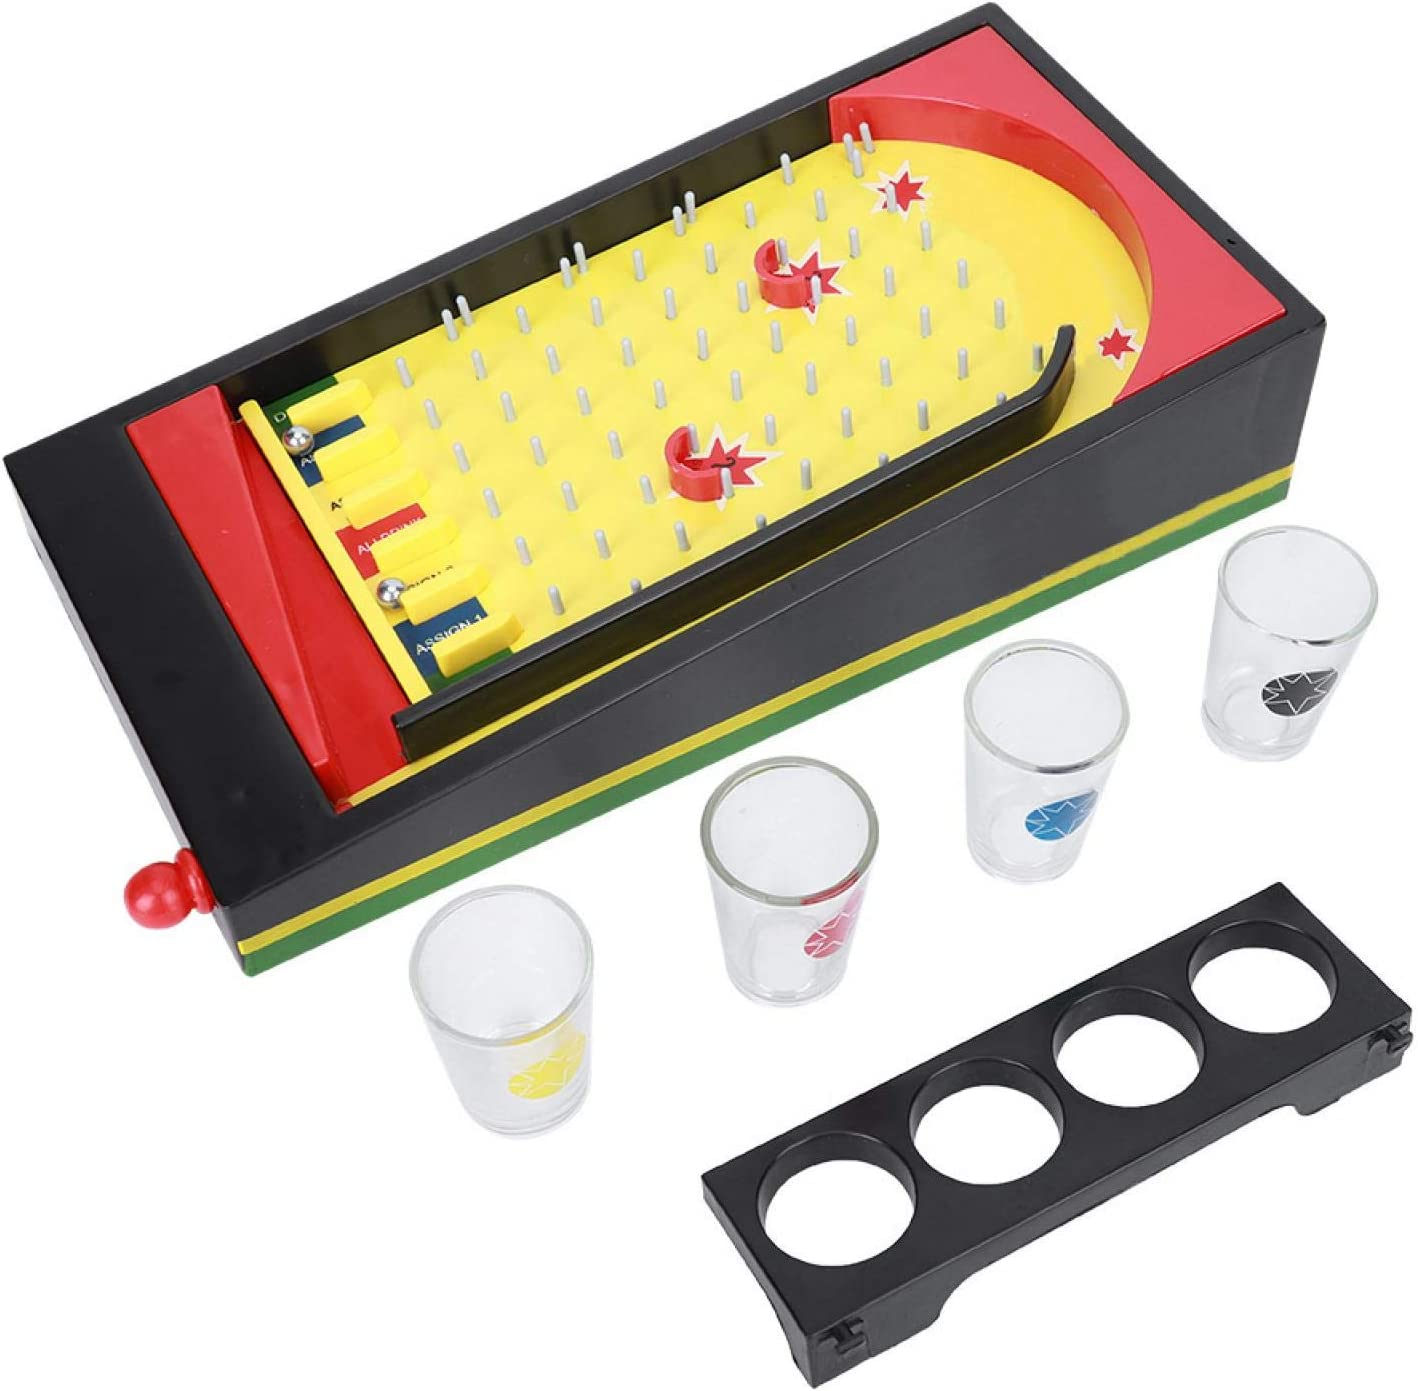 PBOHUZ online shopping Wine Cup Game Nippon regular agency Board Entertainment Plastic Pinball Adults